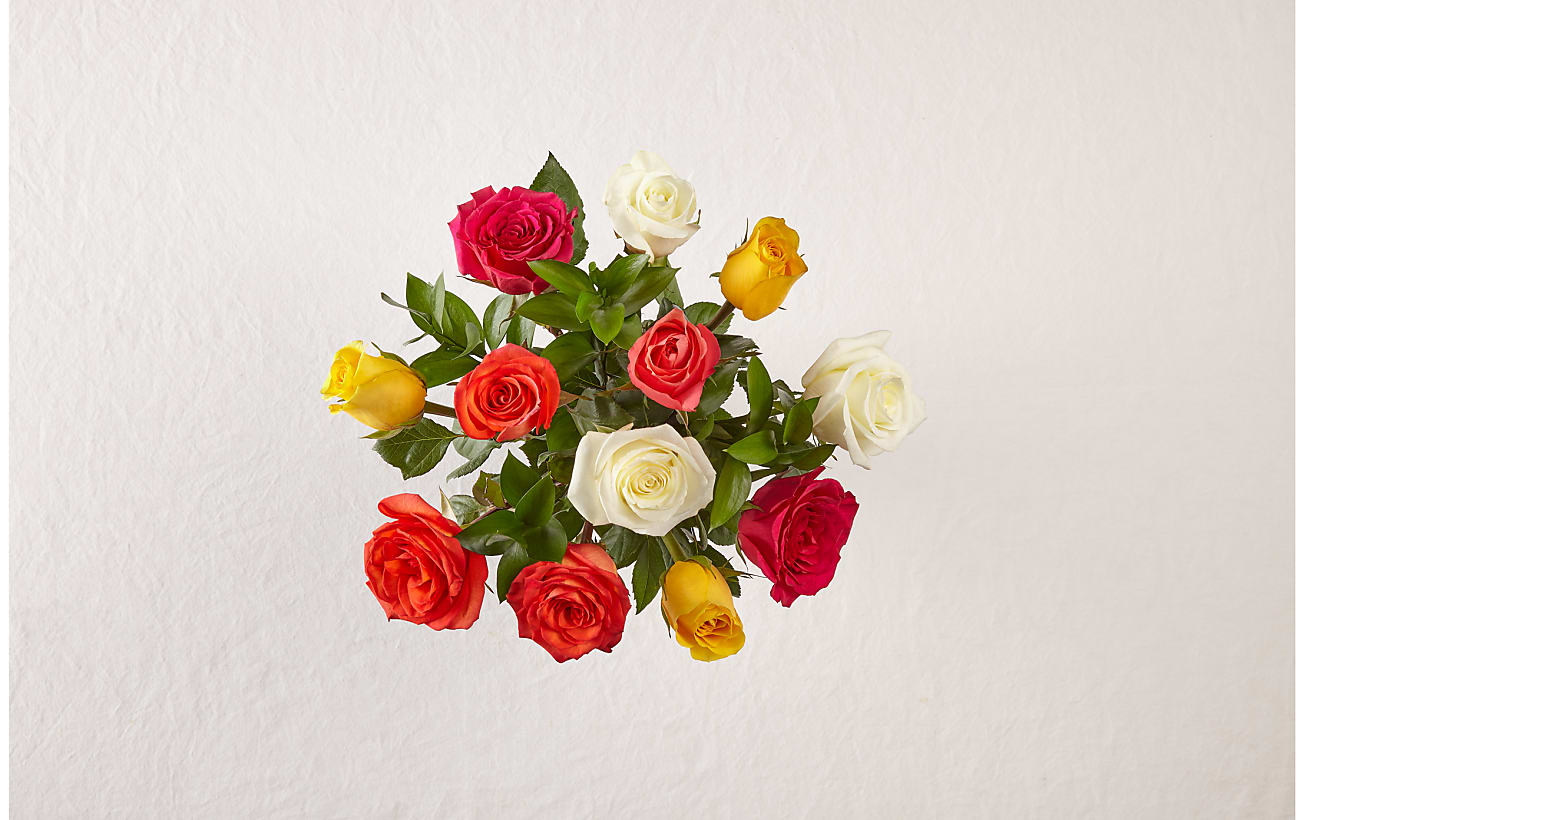 Mixed Roses with Vase - Image 3 Of 4